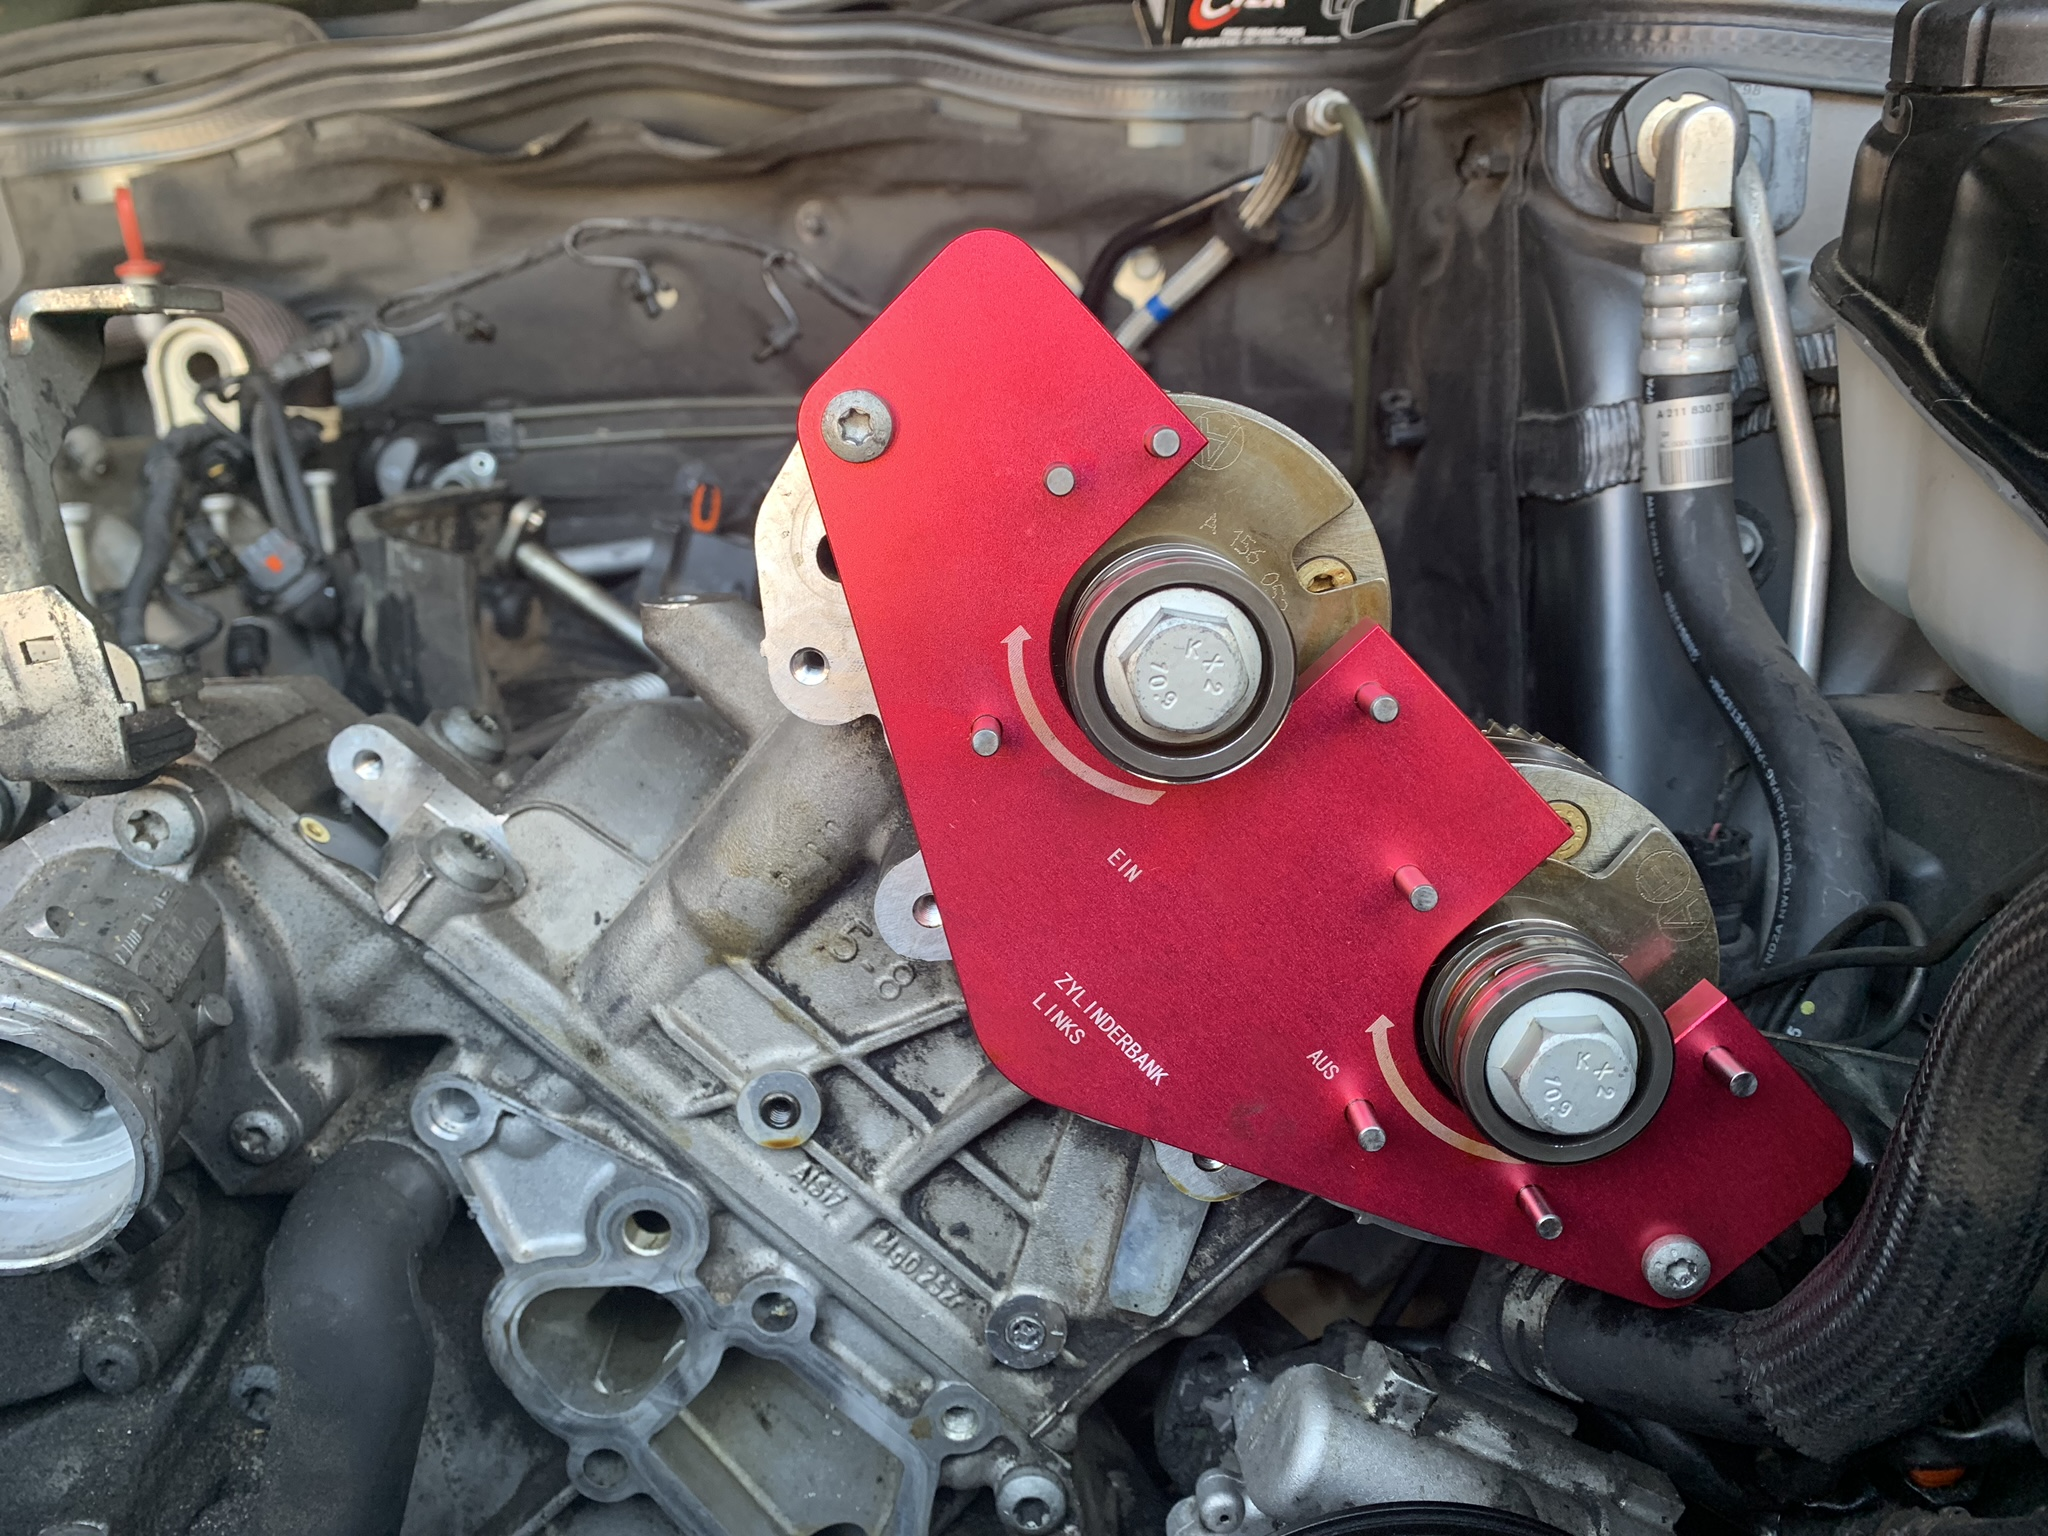 Mercedes-Benz M156 (C63 AMG, S63 AMG, & More) Cylinder Head